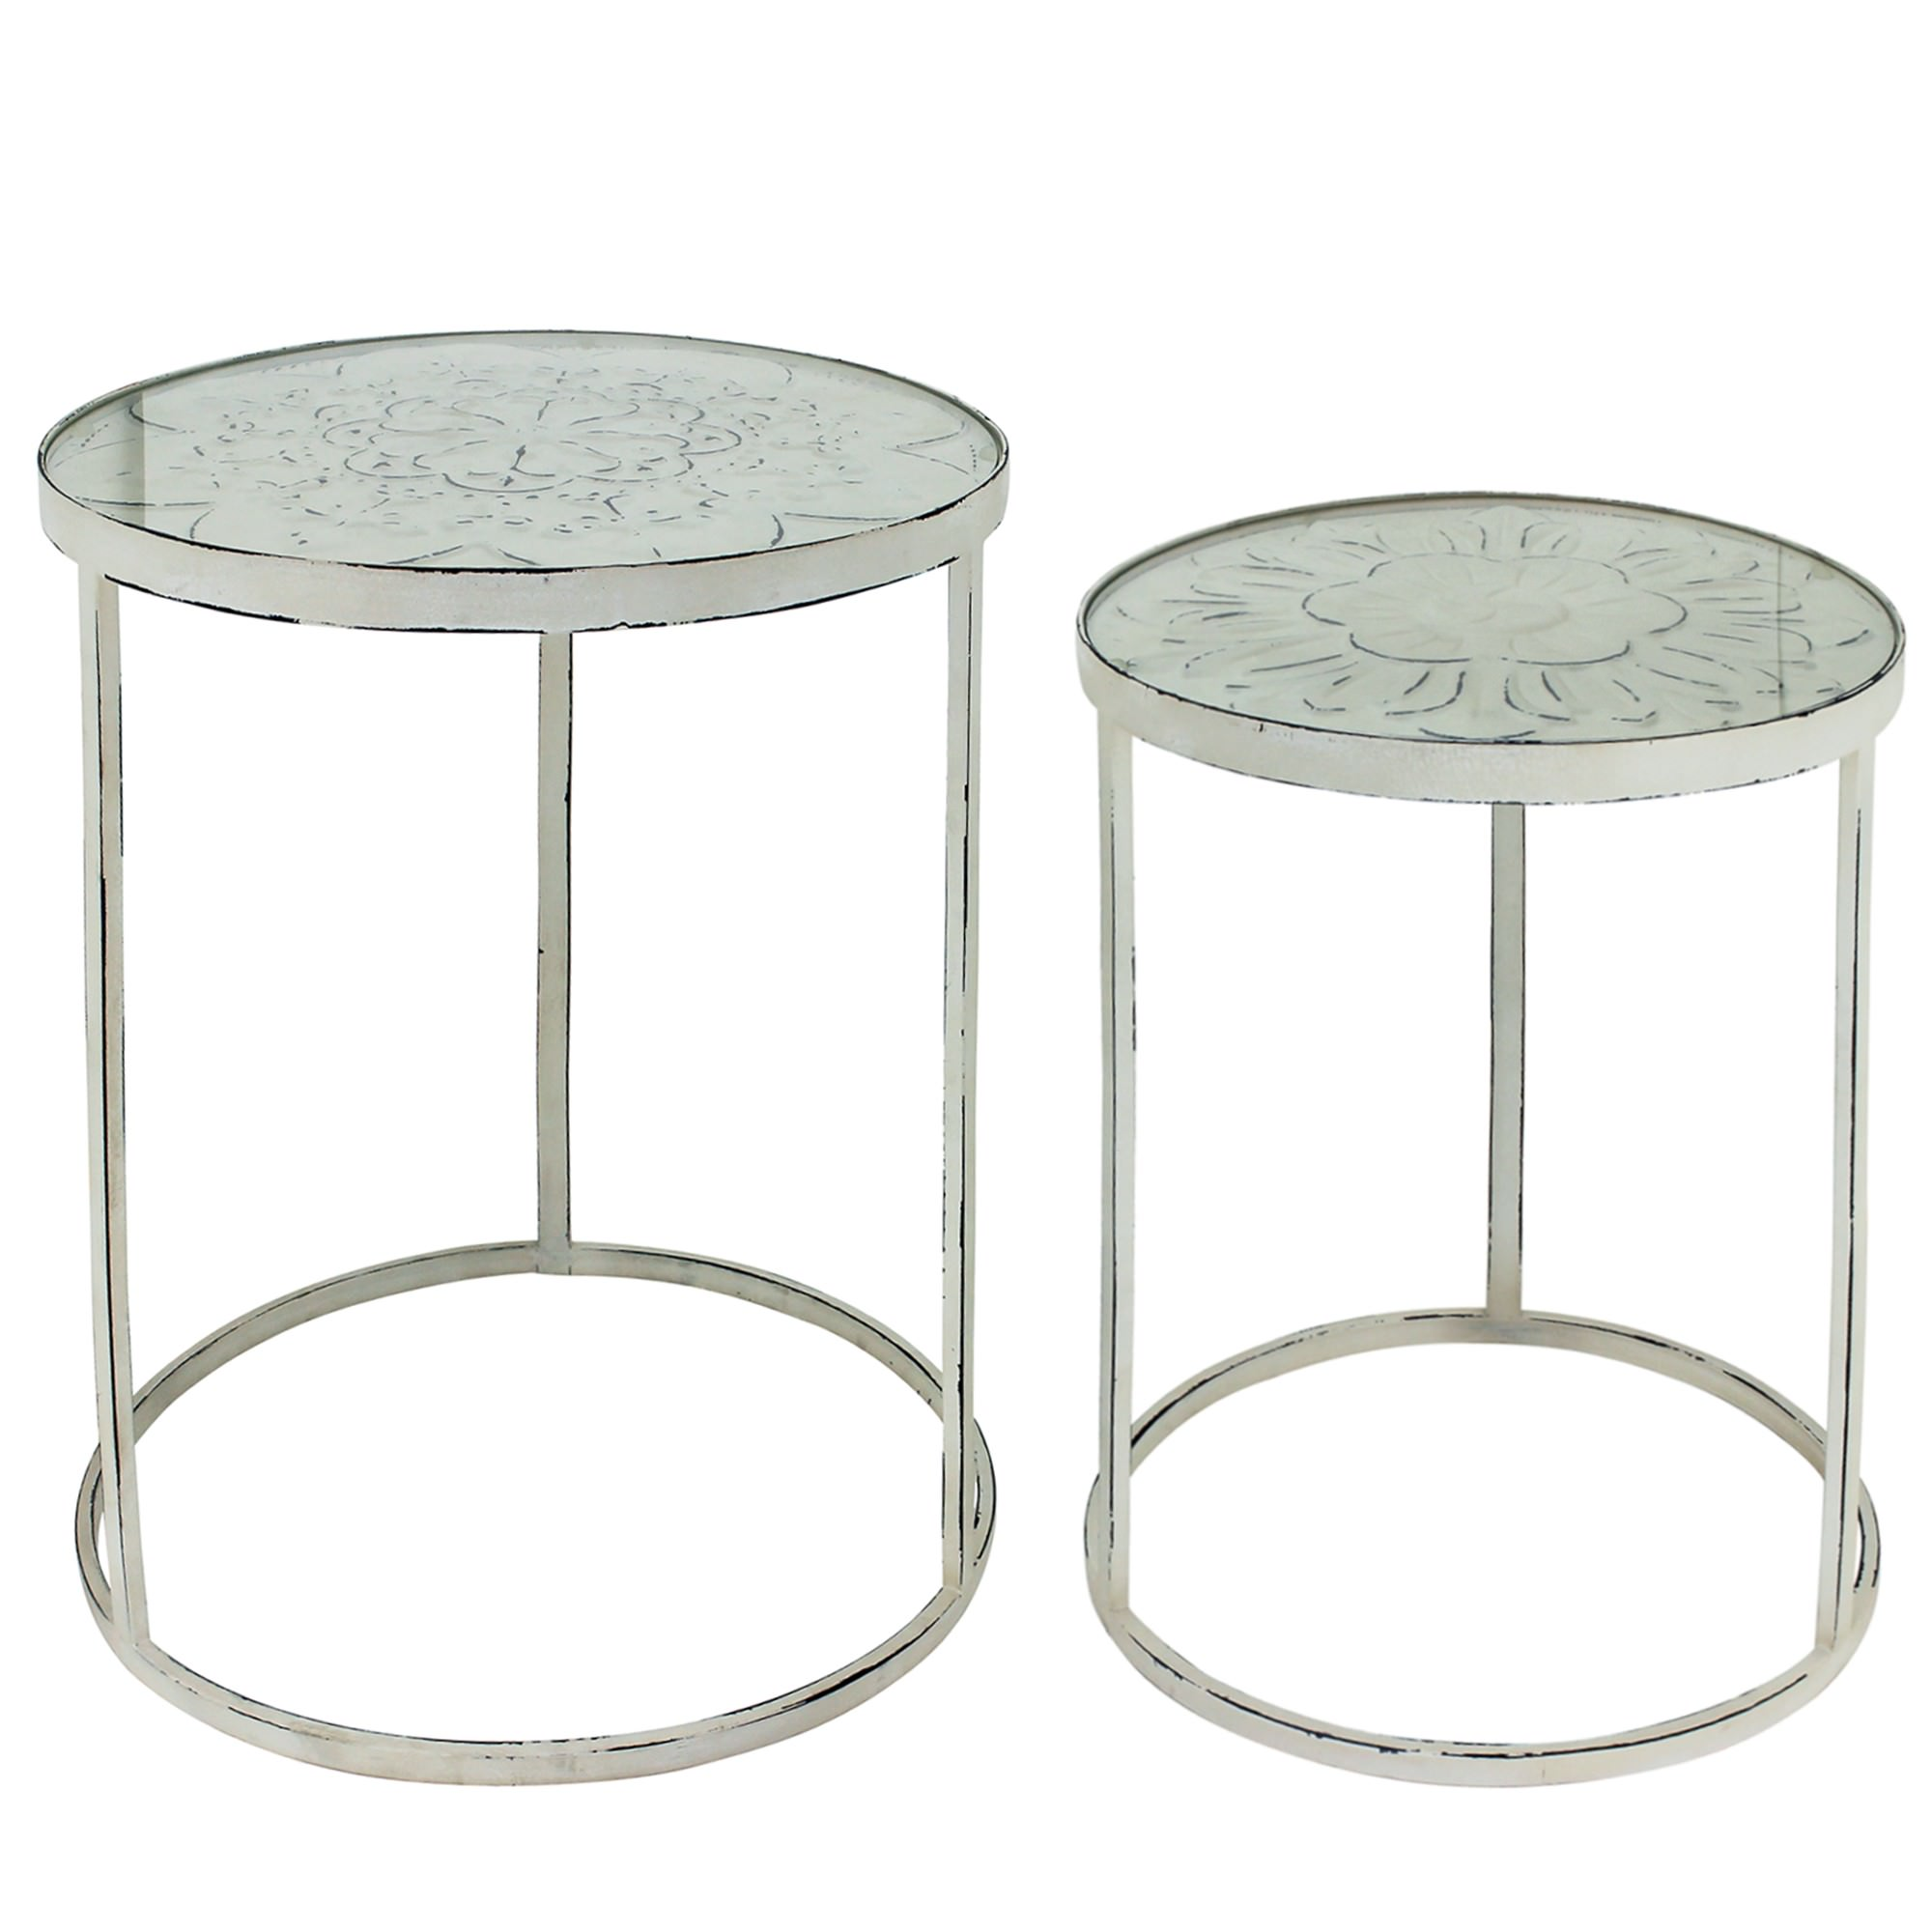 Nora 2 Piece Glass Topped Metal Round Nesting Table Set